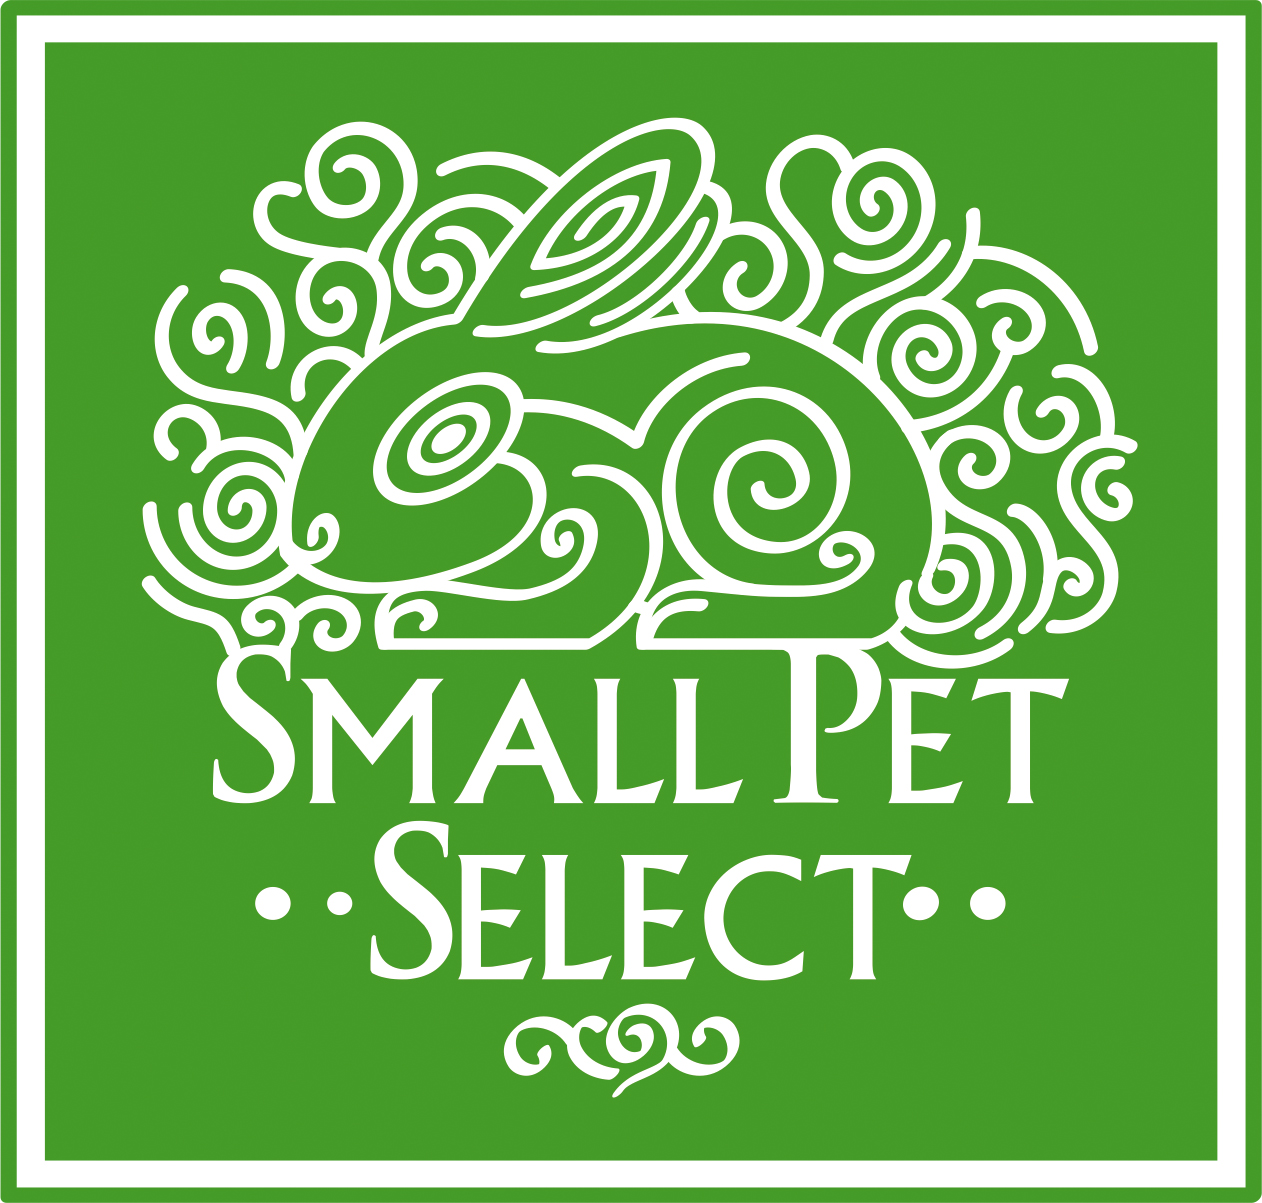 Timothy Hay Delivery Service Announced by Small Pet Select